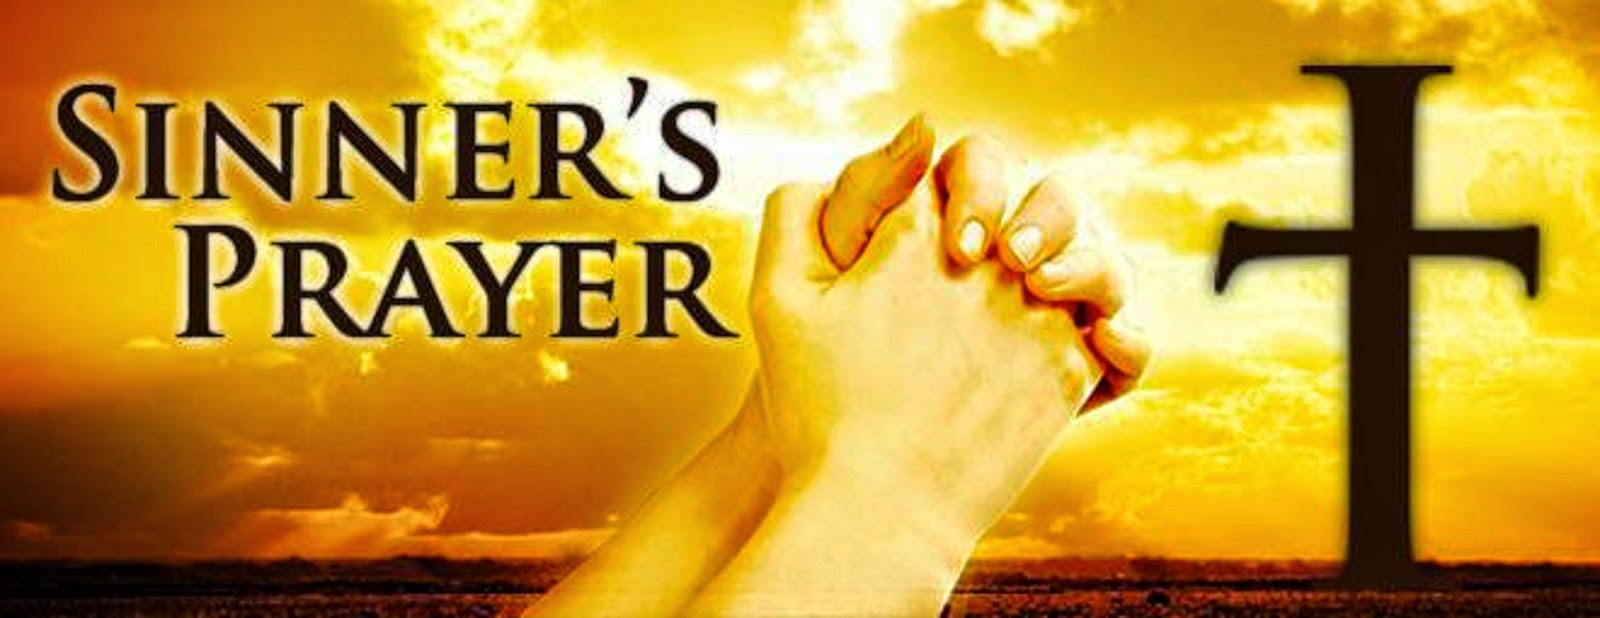 THE SINNER'S PRAYER IS N OT BIBLICAL